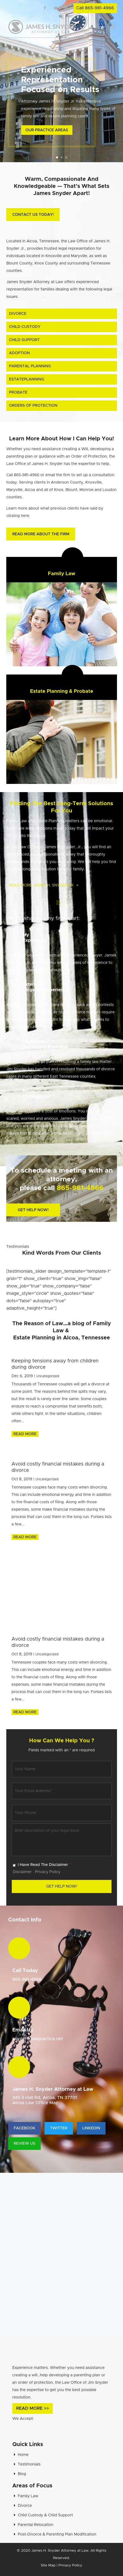 James H. Snyder Jr. - Alcoa TN Lawyers